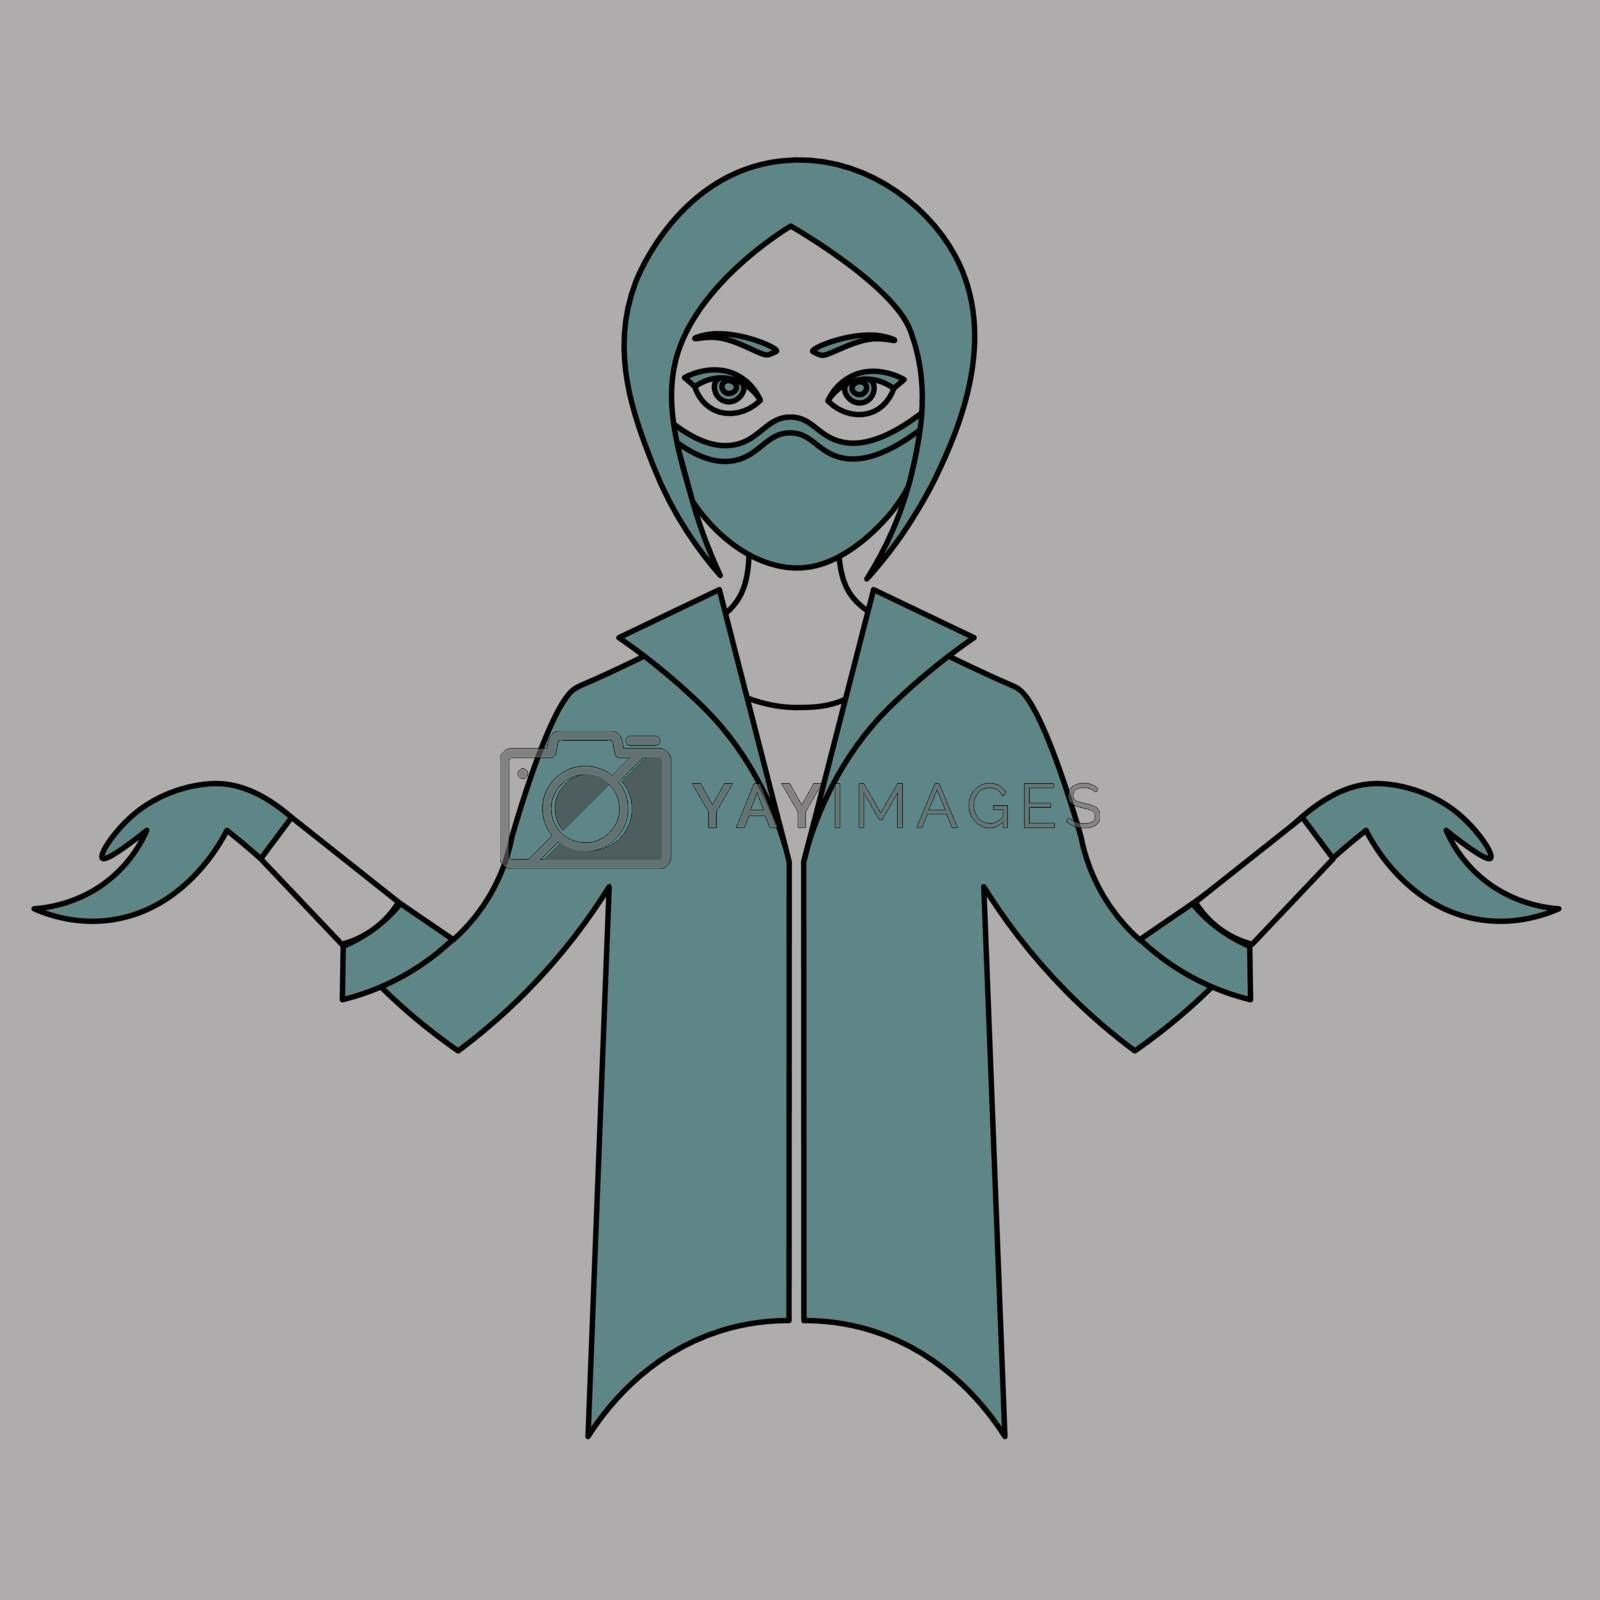 Colorful contour drawing of cartoon young female doctor in medical mask and rubber gloves shrugging shoulders